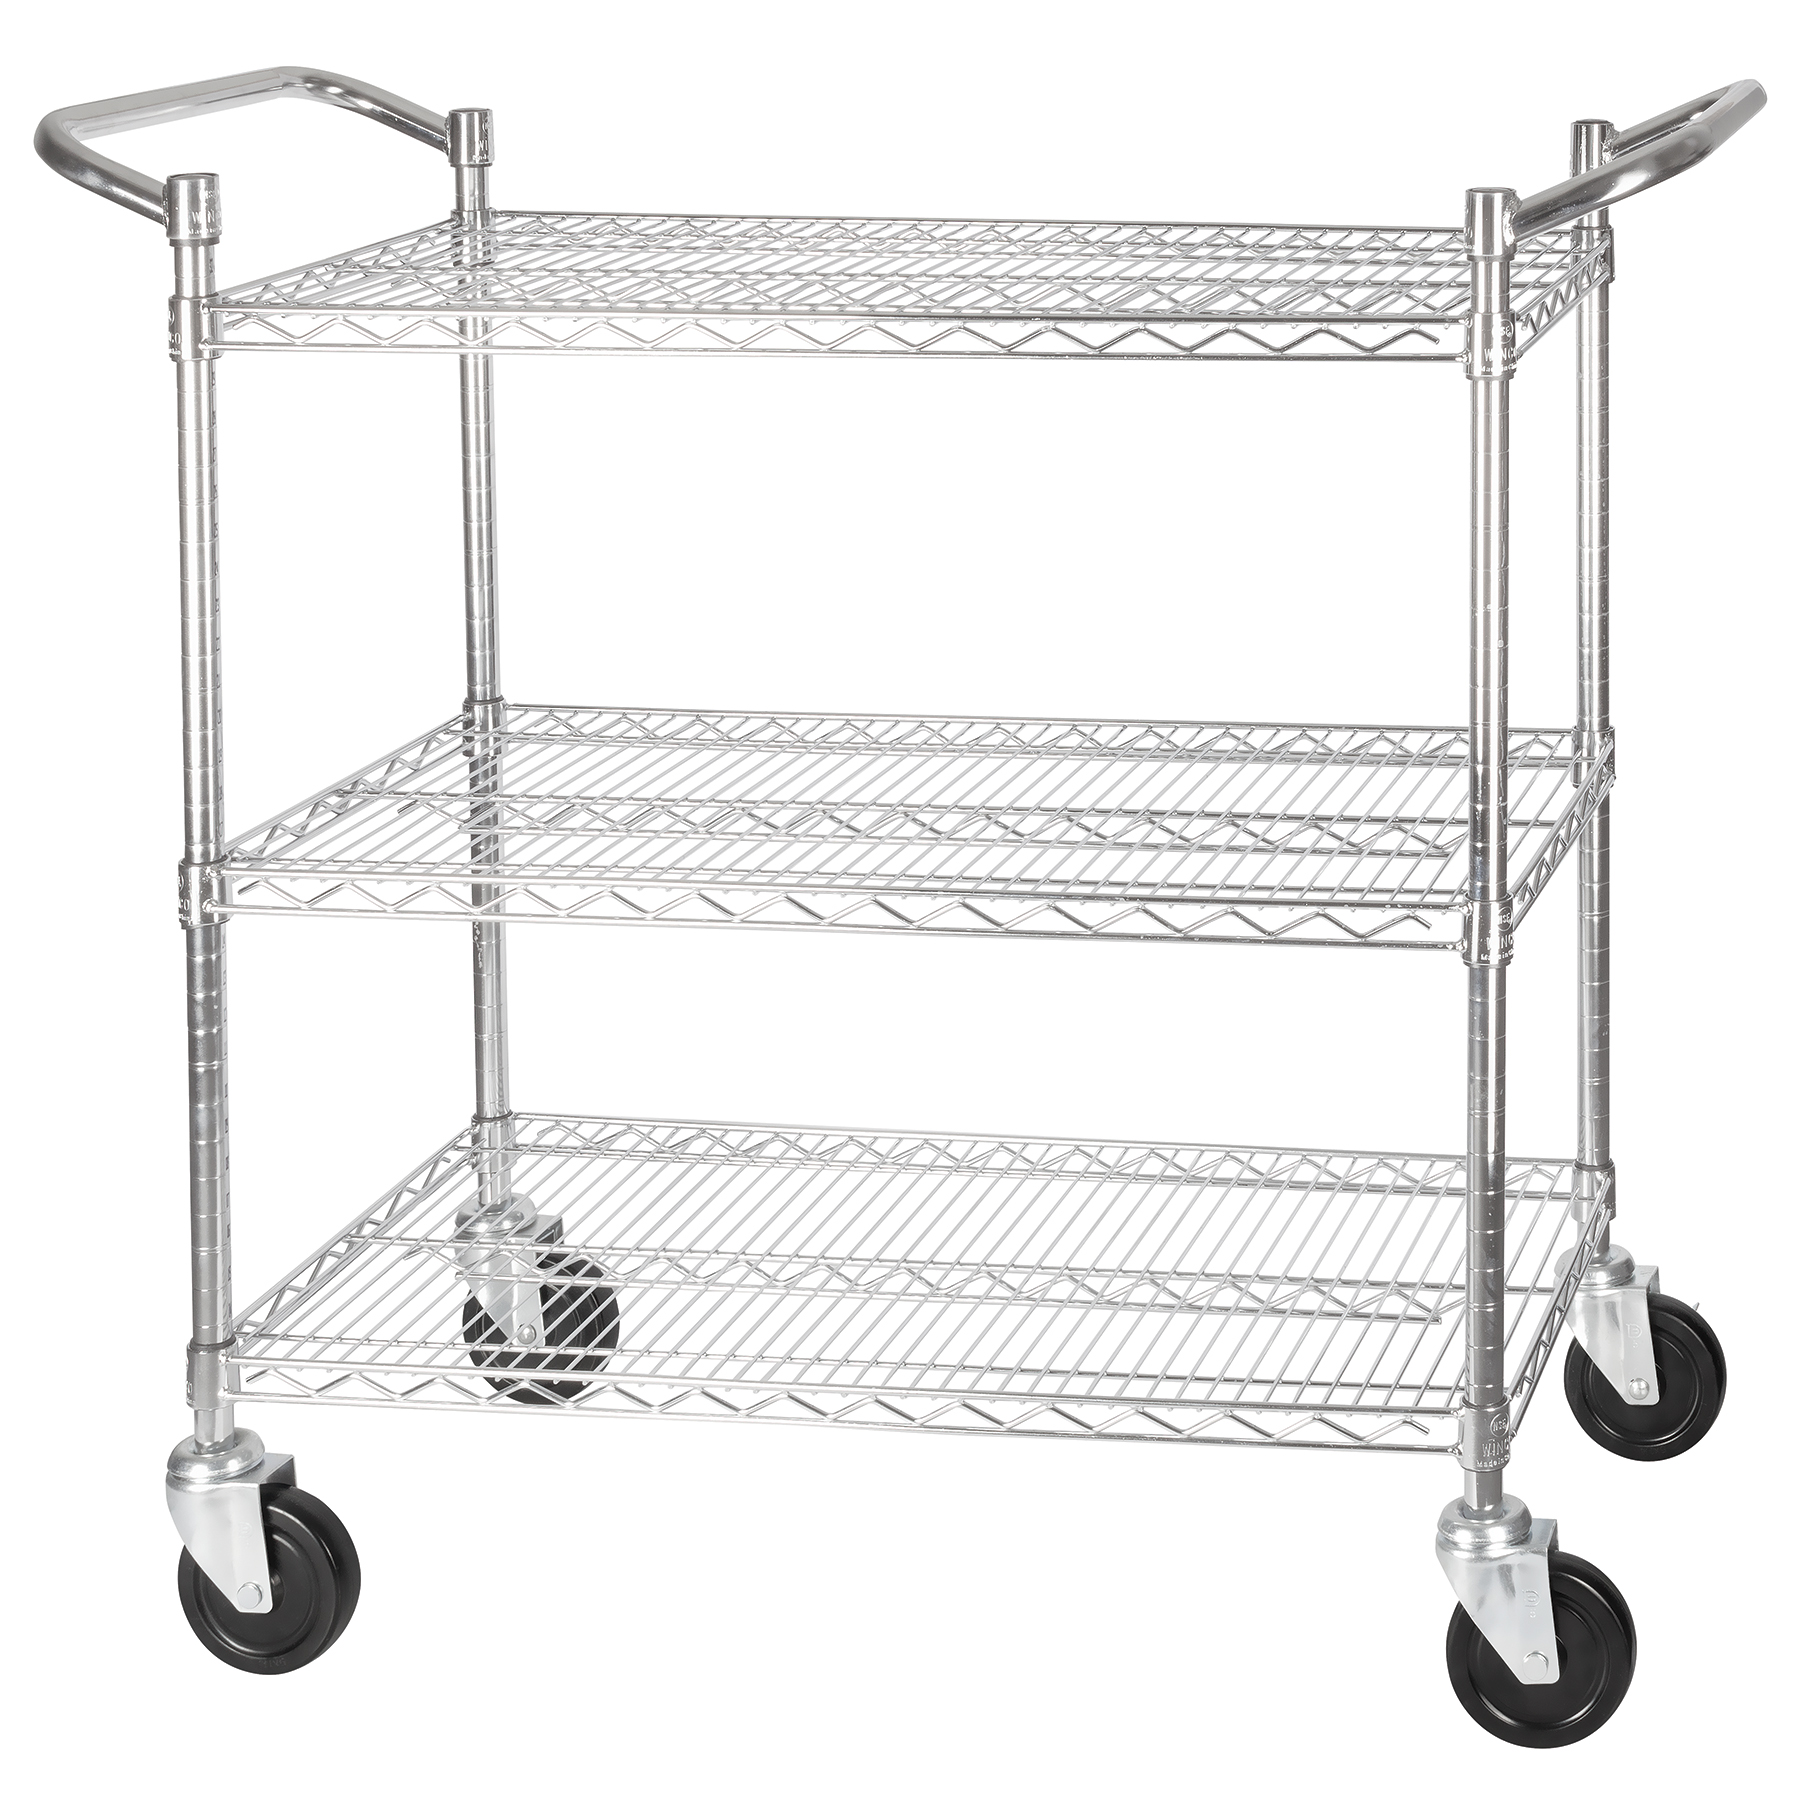 Winco VCCD-2448B wire shelving